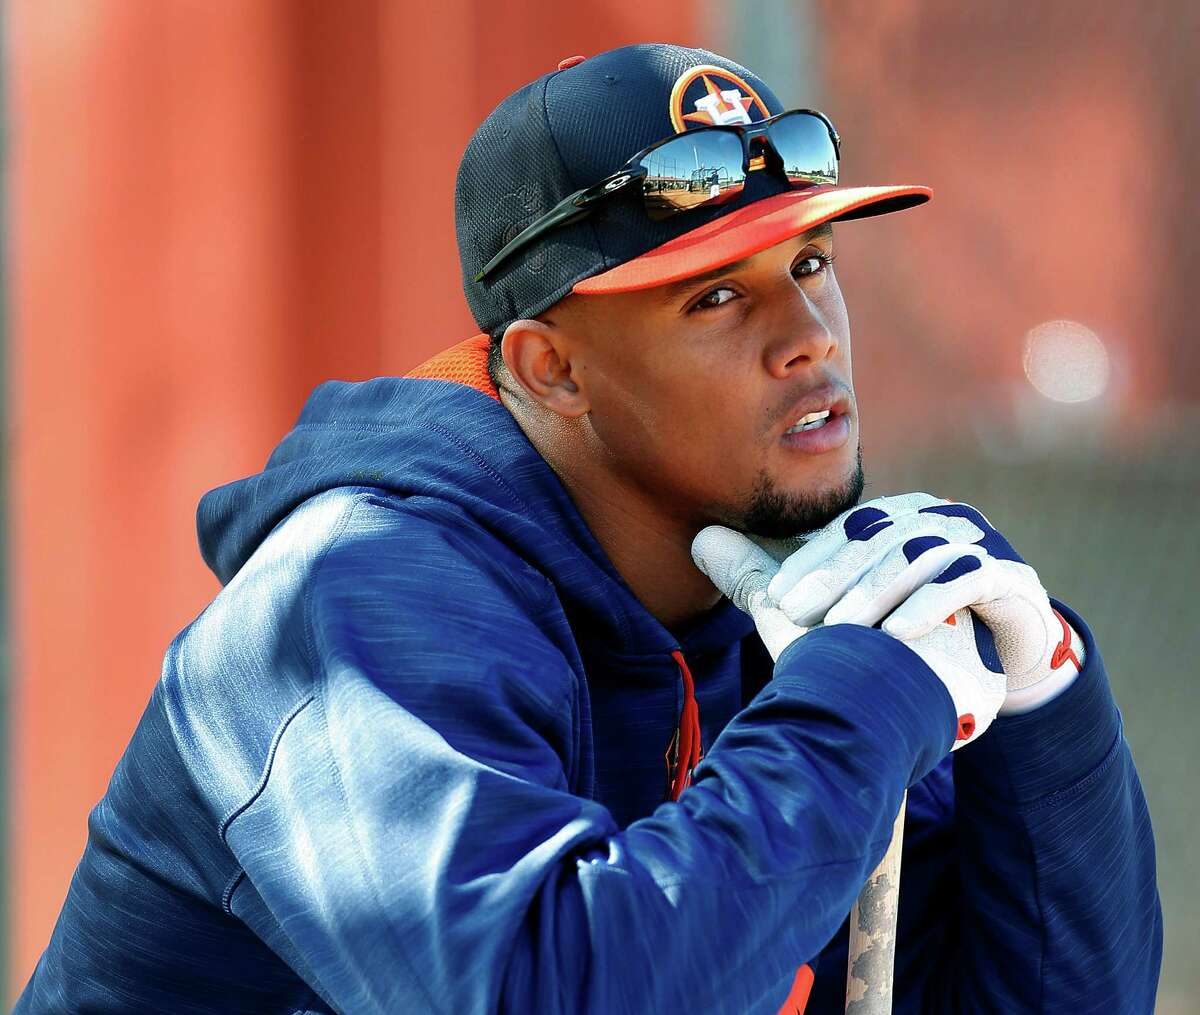 Astros outfielder Carlos Gomez has been on the disabled list with a bruised rib cage since May 17.